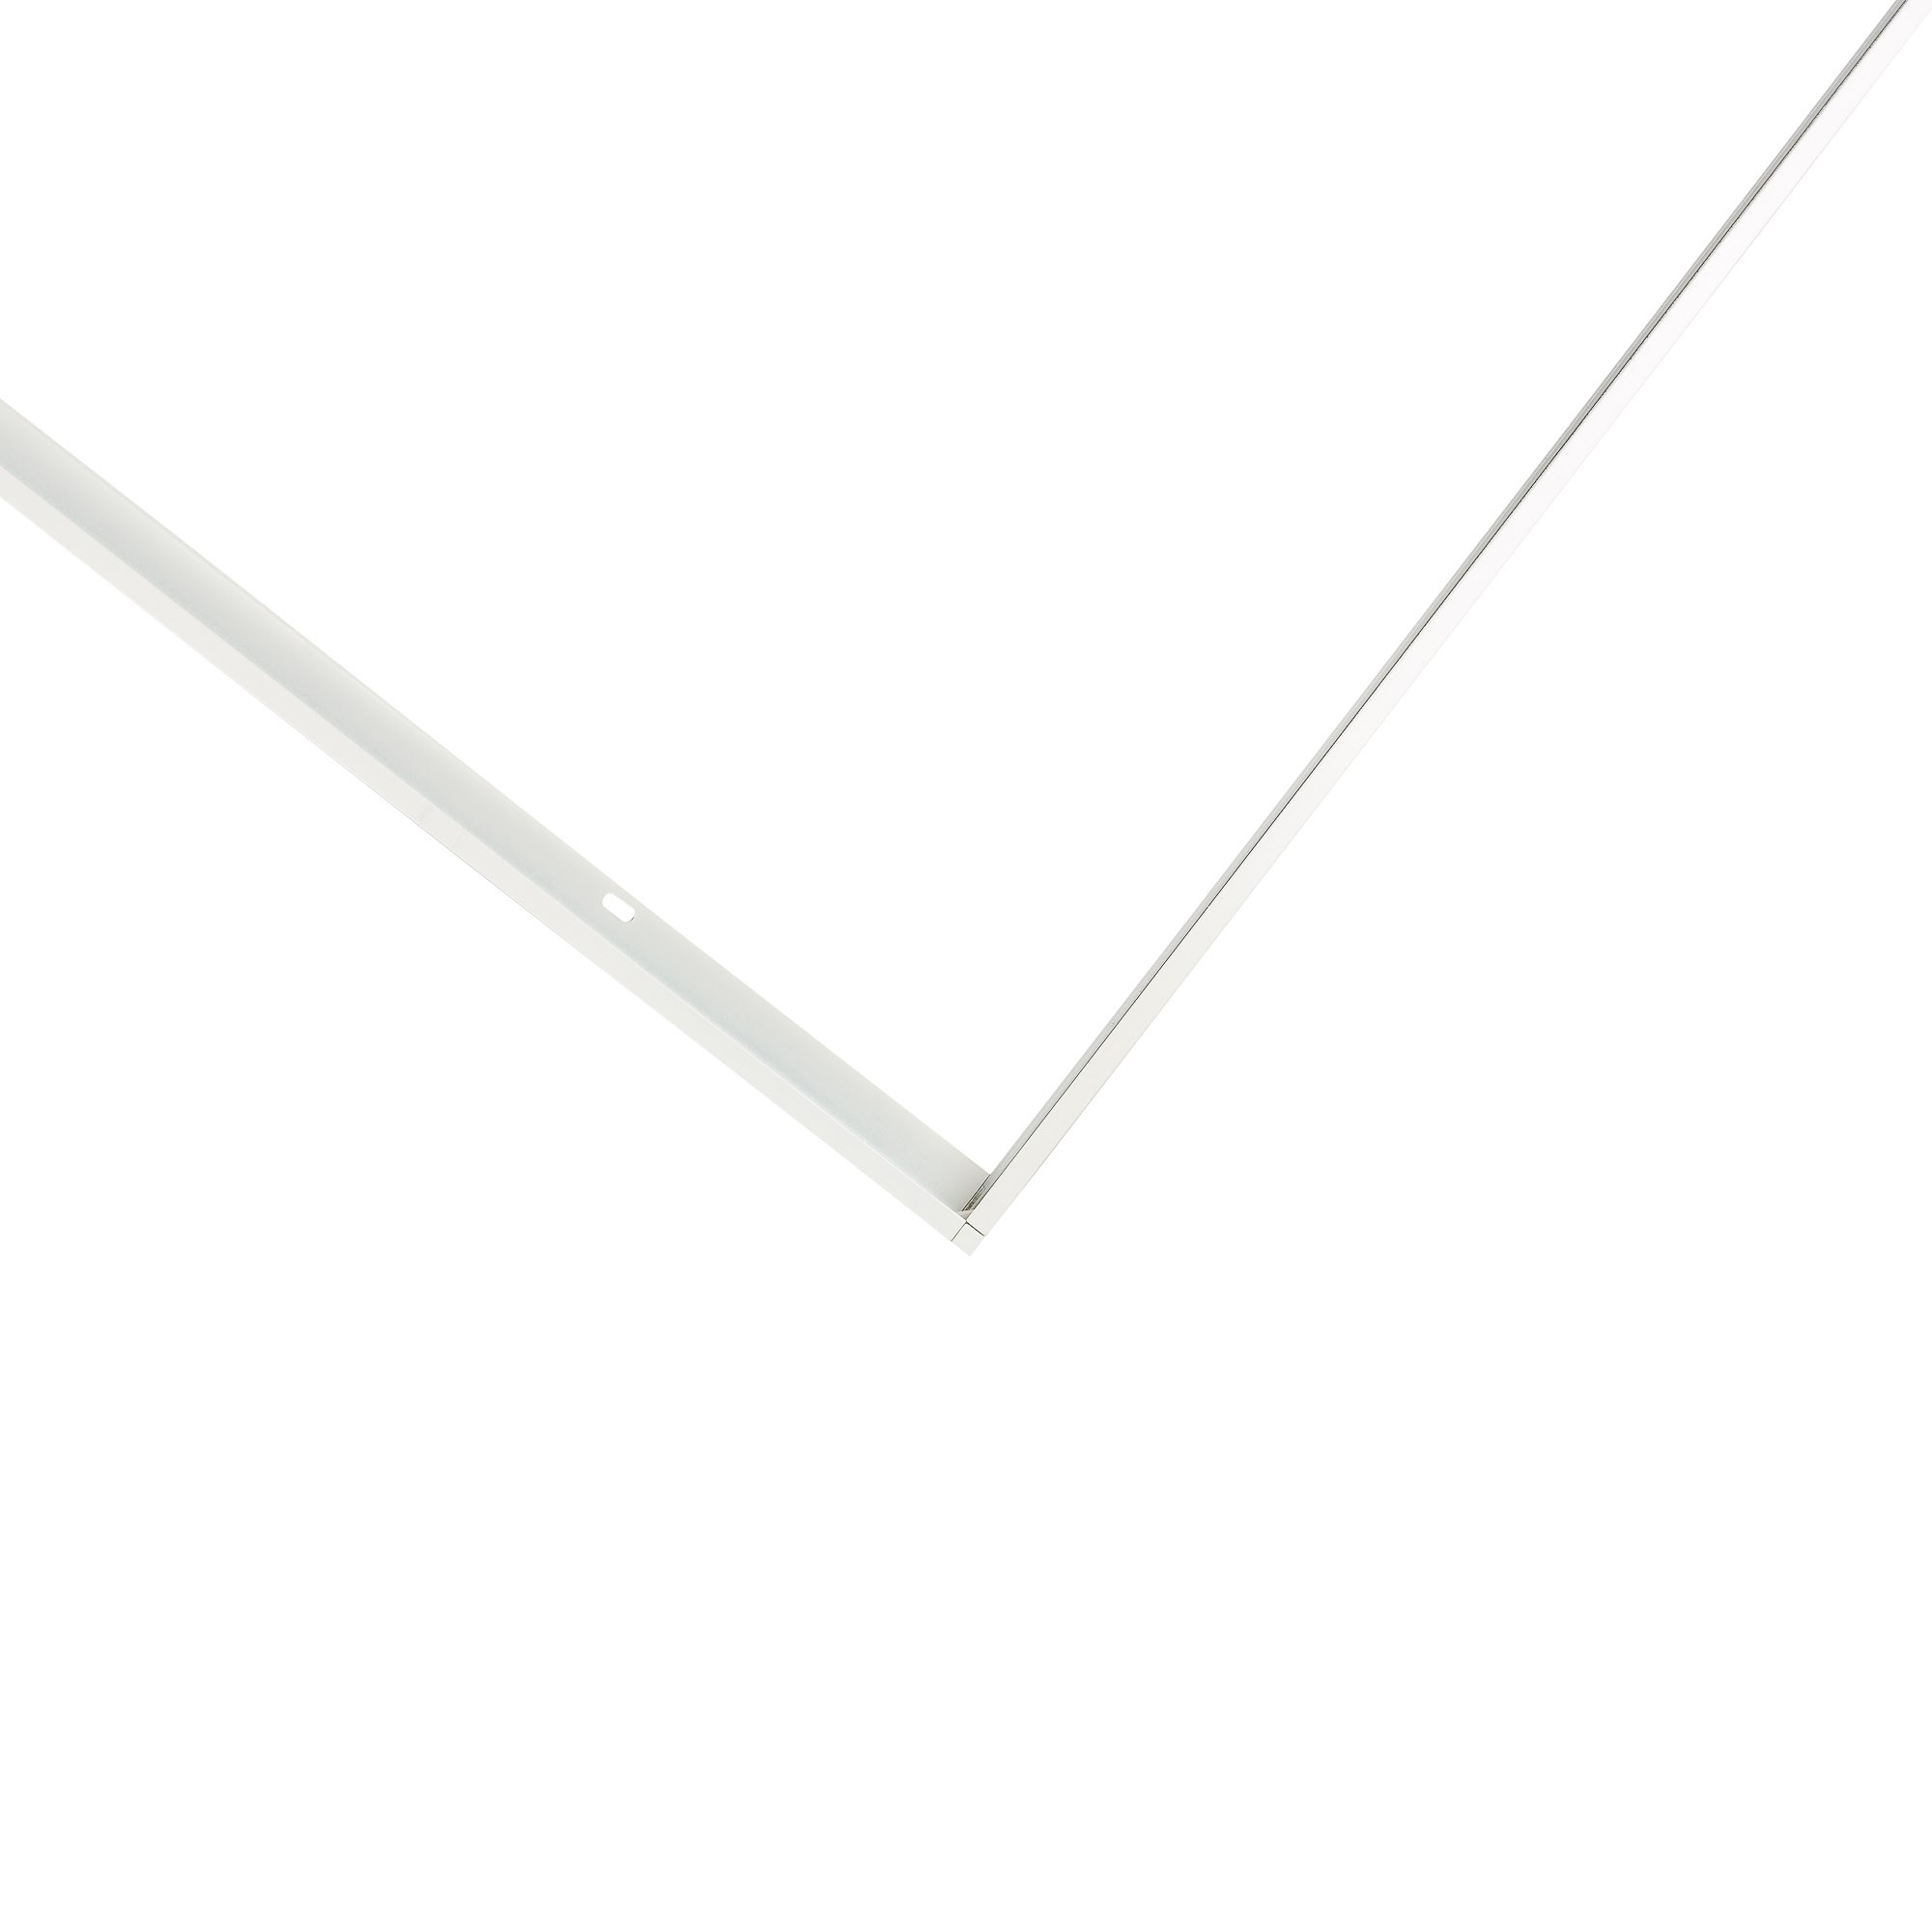 SURFACE MOUNT KIT TO SUIT 1200 X 600 LED LIGHT PANEL